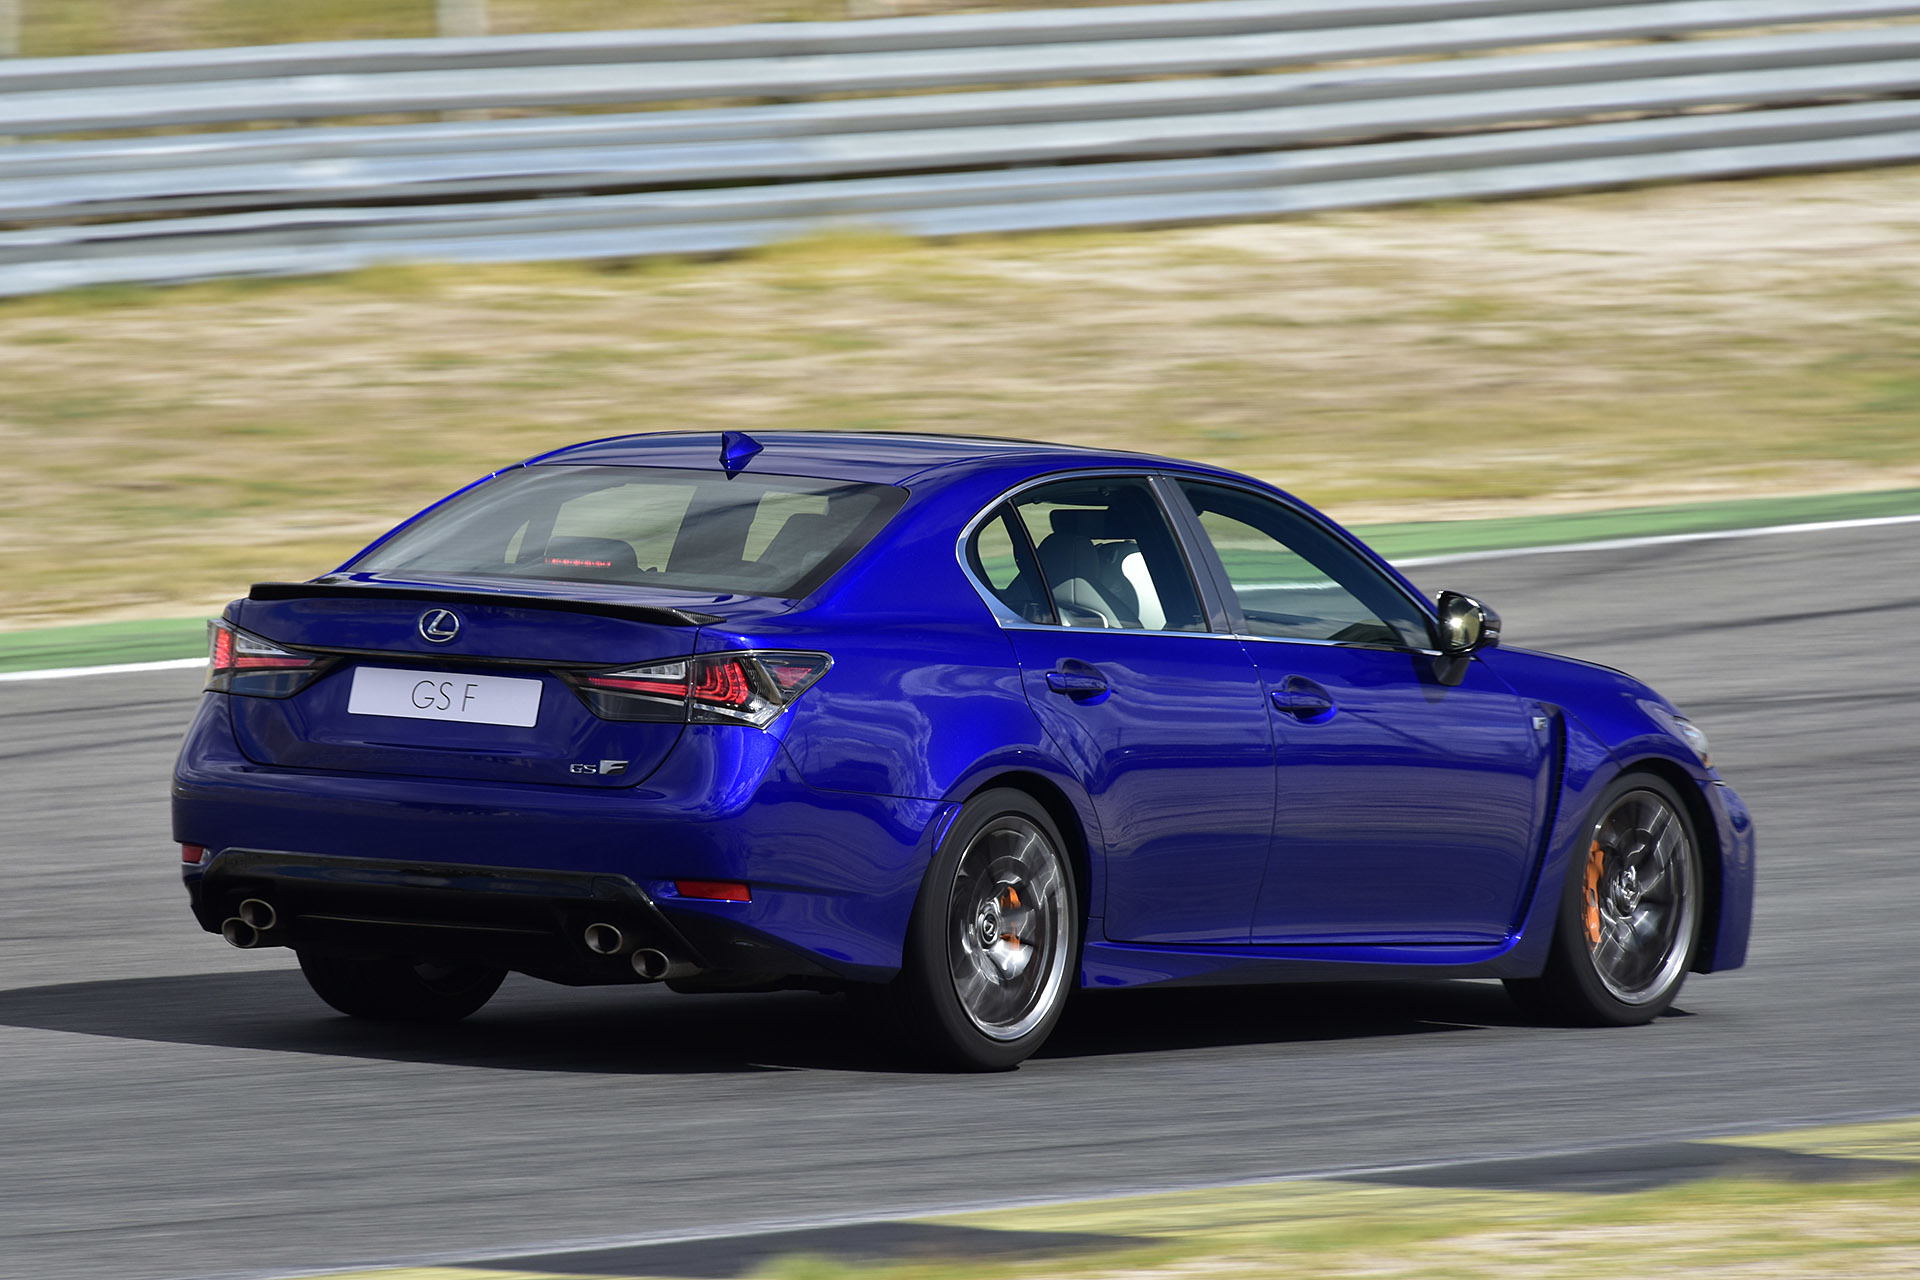 New 2016 Lexus GS F With 3 Engine Modes 2 Muscle Cars Zone